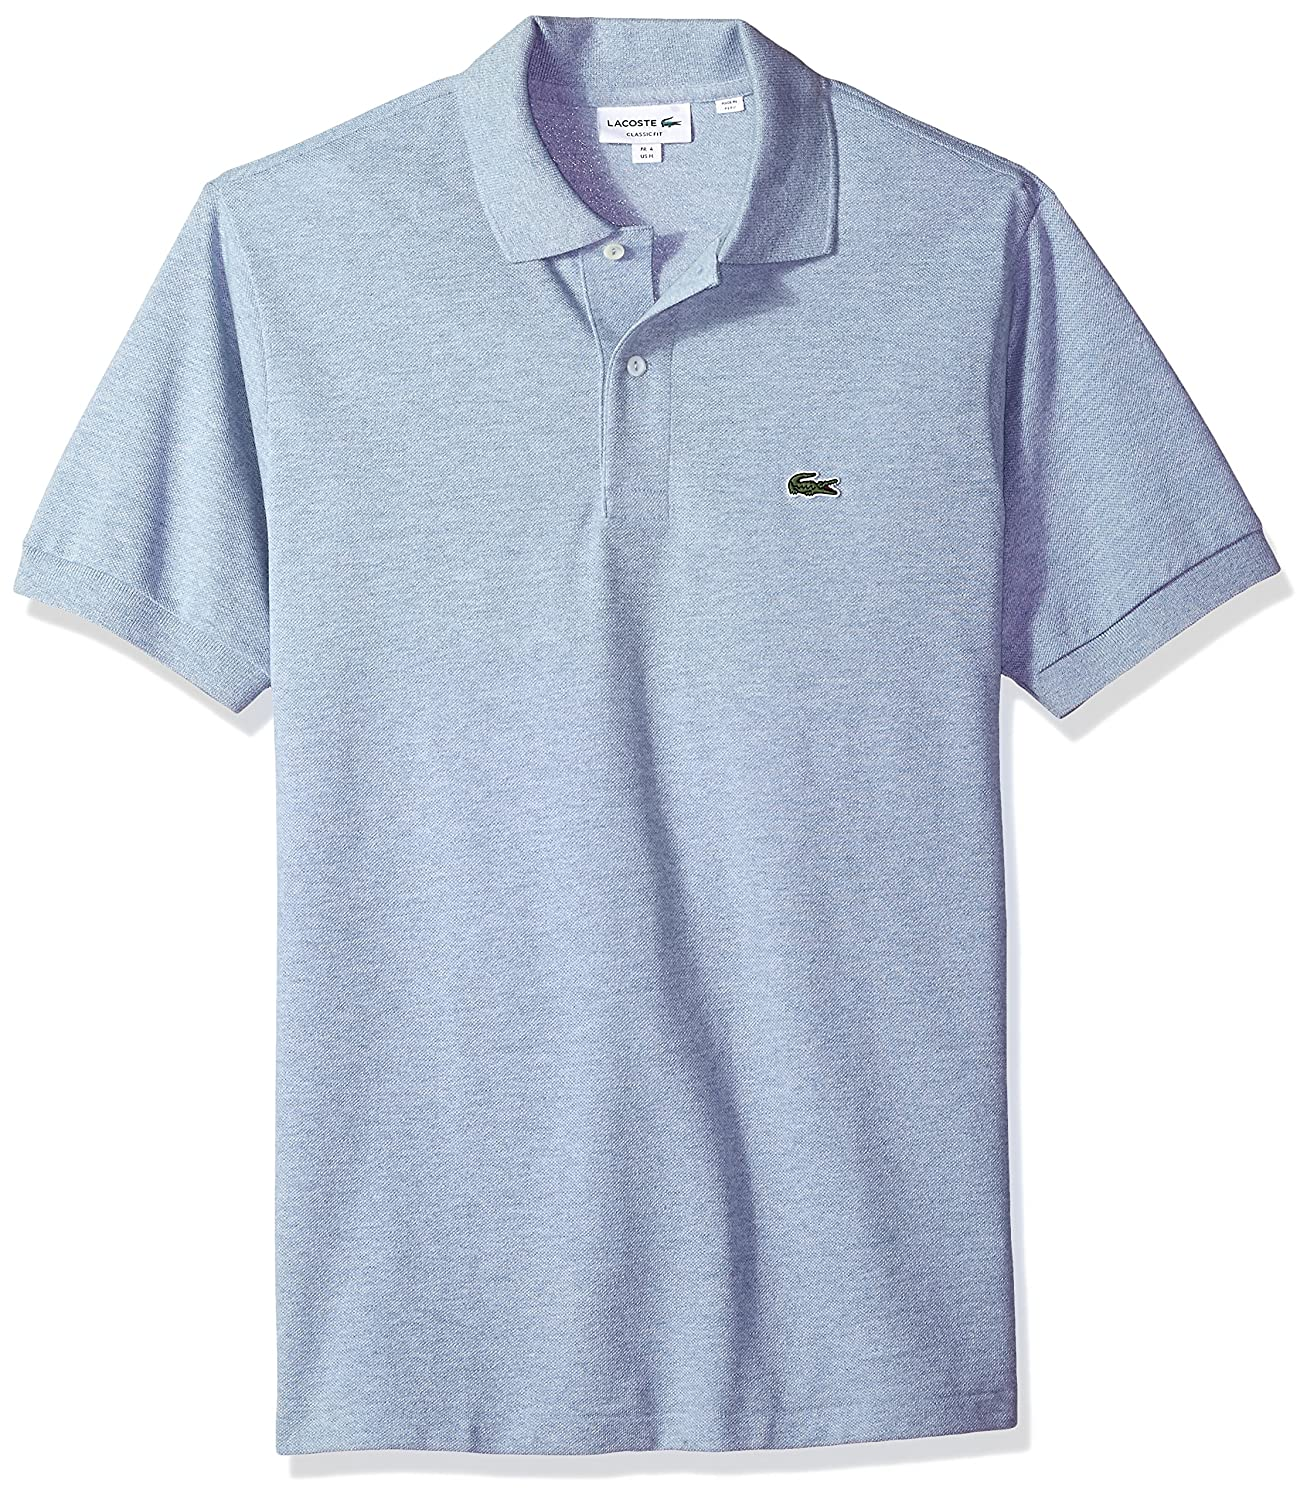 L1264 Lacoste Mens Short Sleeve Pique Classic Fit Chine Polo Shirt